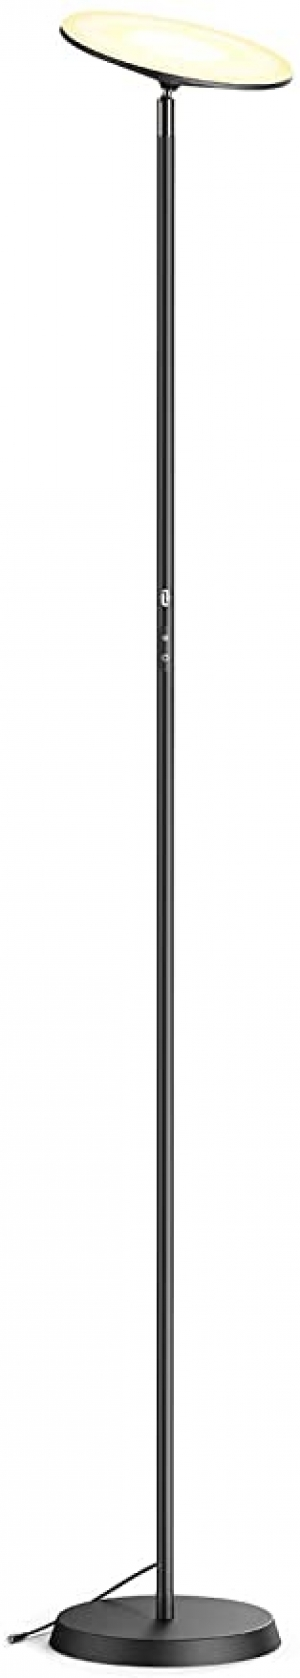 ihocon: TaoTronics LED Floor Lamp 30W 2400lm with 3 Color Modes & 3 Brightness Levels  落地燈